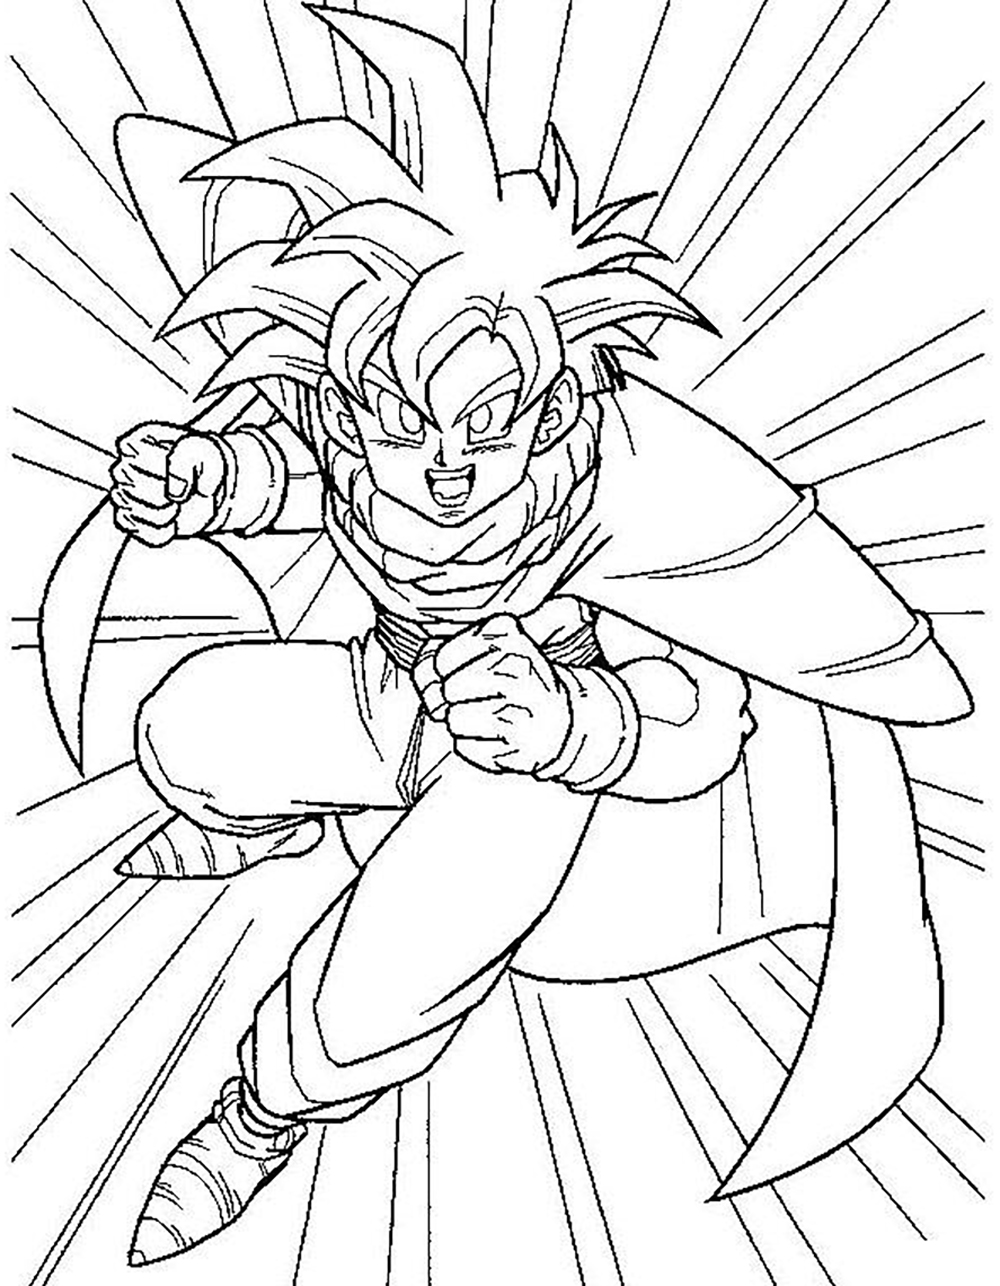 dragon ball coloring pictures dbz coloring pages 2 coloring pages to print pictures dragon coloring ball